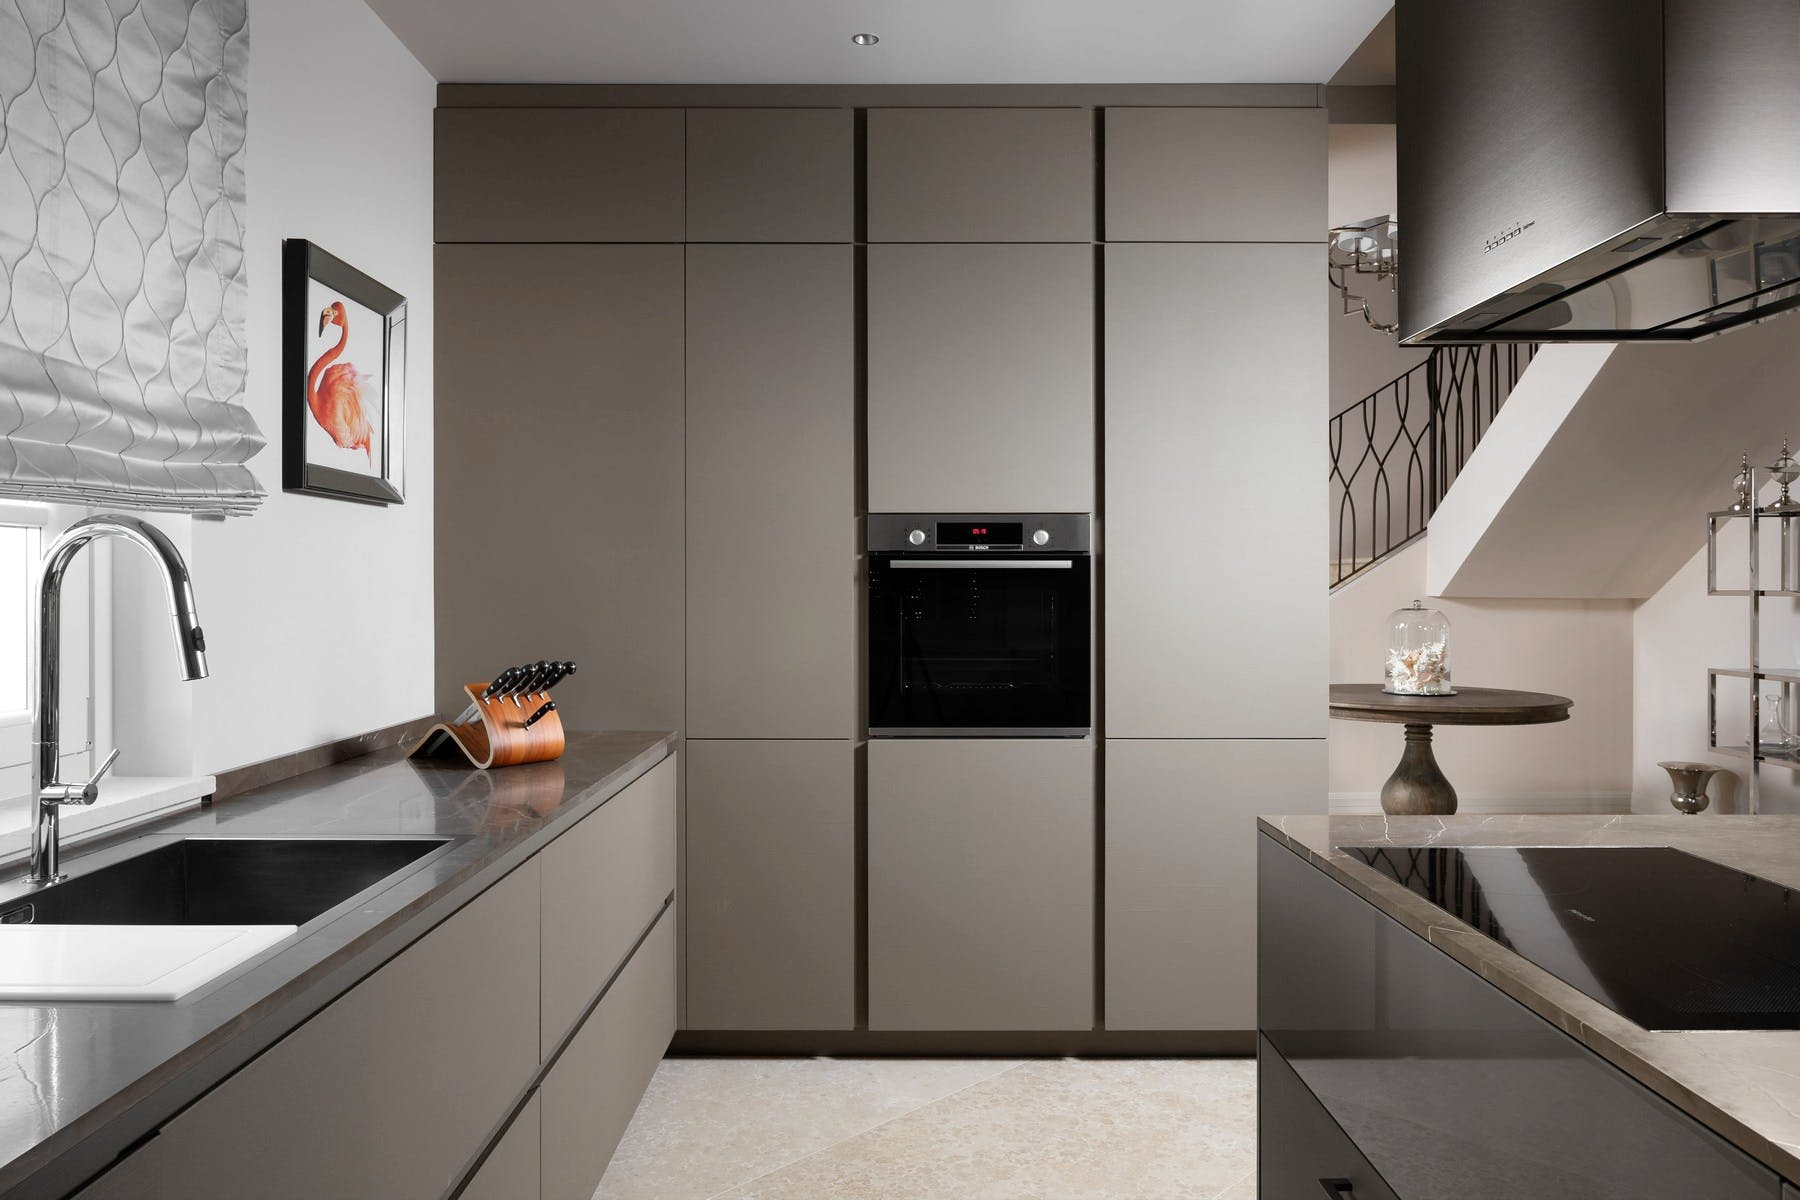 Fully-fitted kitchen area